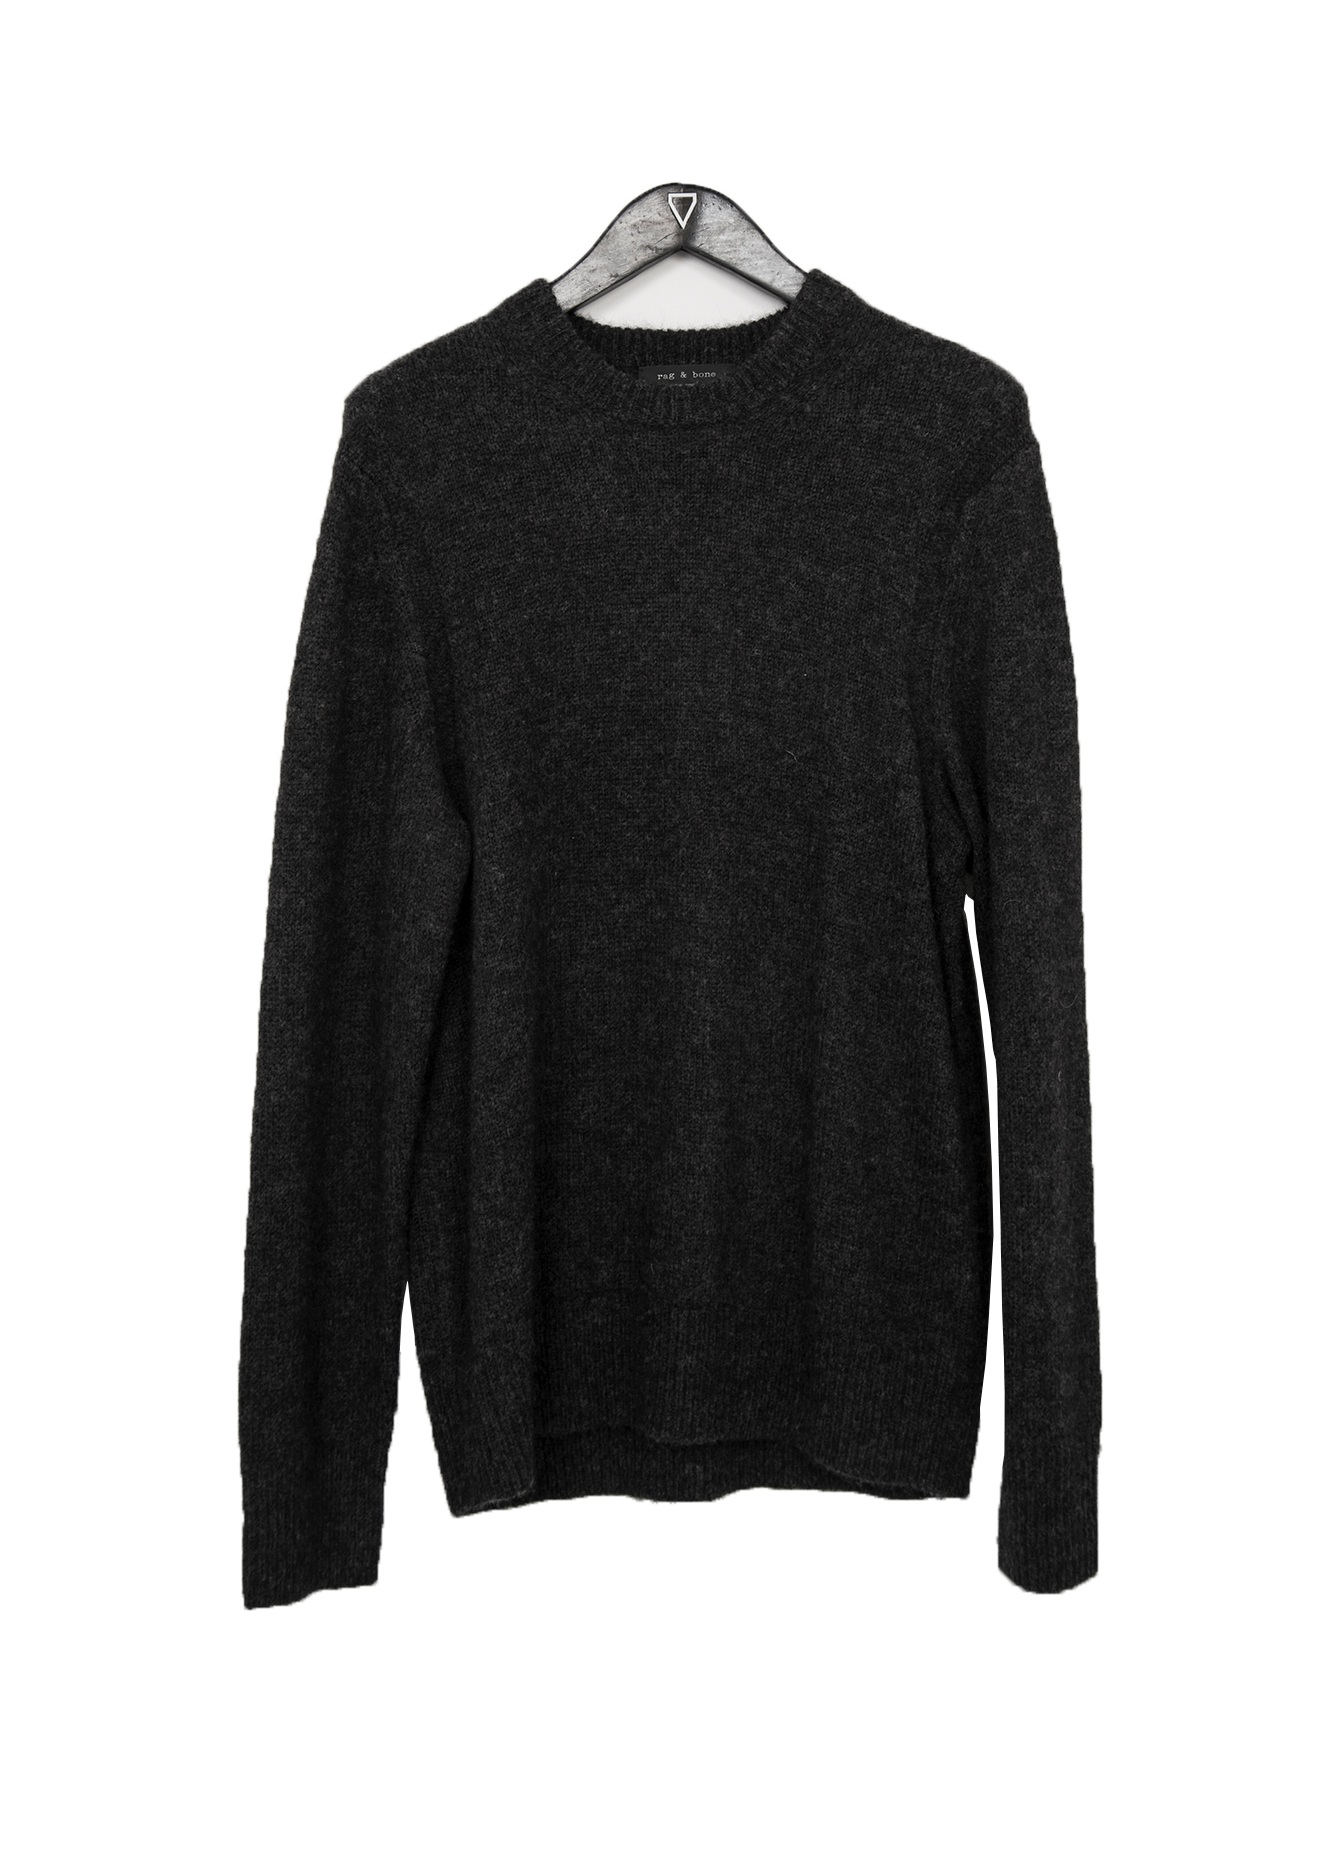 "42 RAG & BONE SWEATER ""RAG-KNT02"